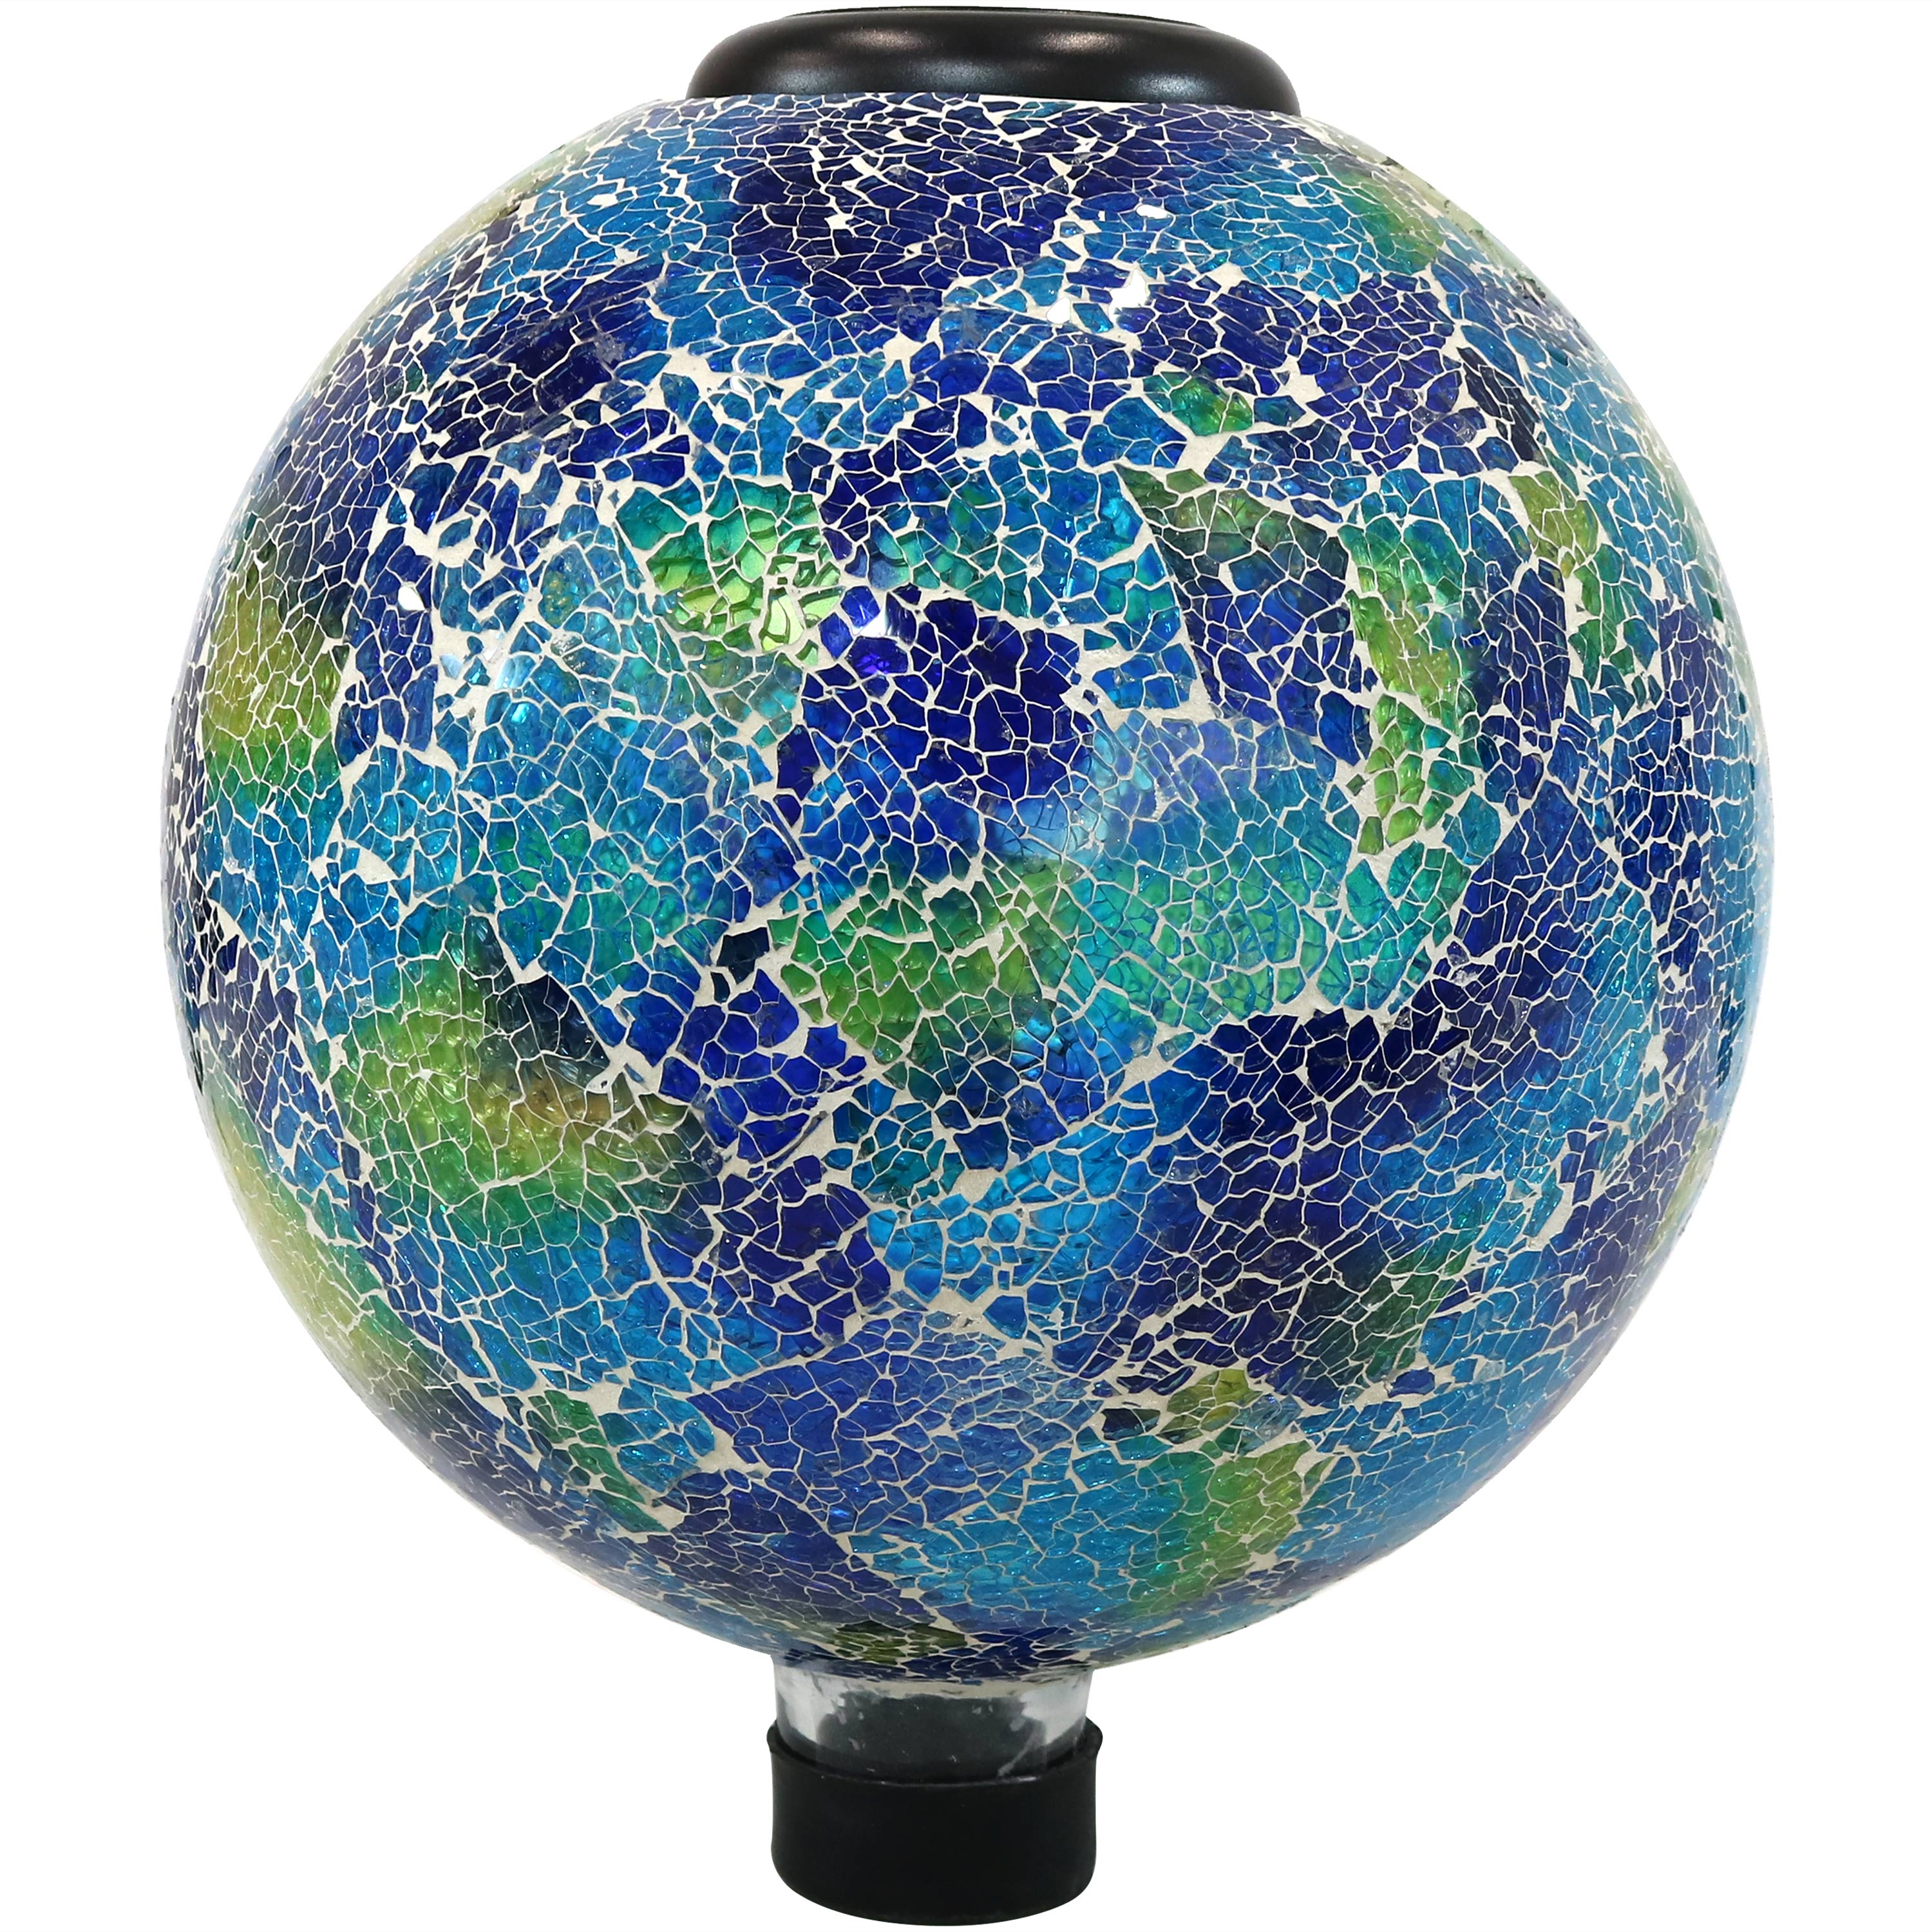 Sunnydaze Garden Gazing Globe with LED Solar Light, Crackled Glass Azul Terra Design, Outdoor and Landscape Decor, 10-Inch